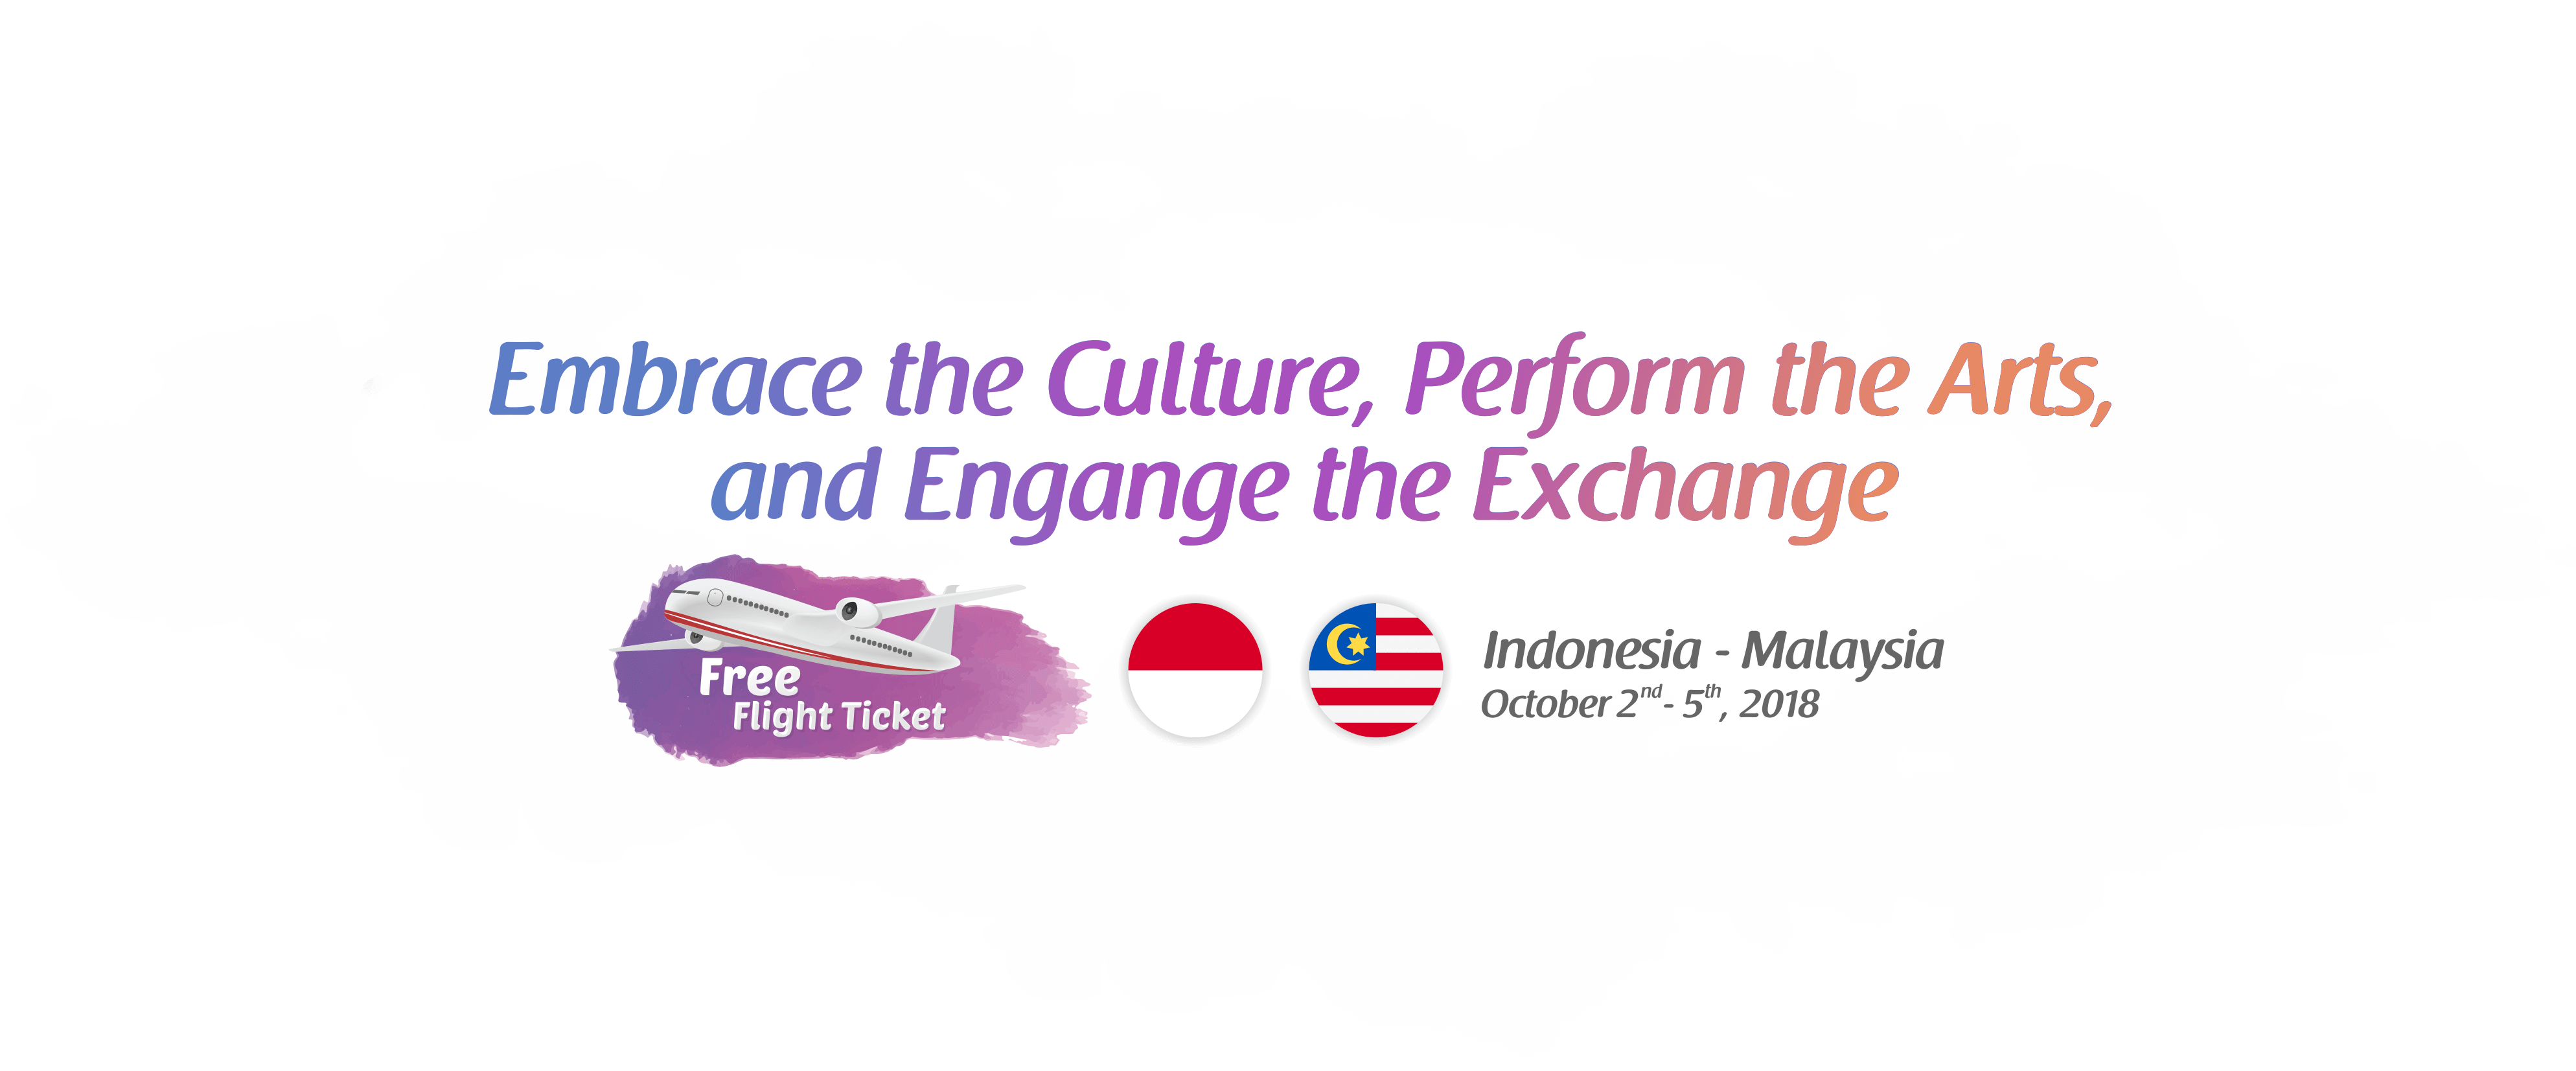 Culture clipart cultural interaction. Iscef malaysia